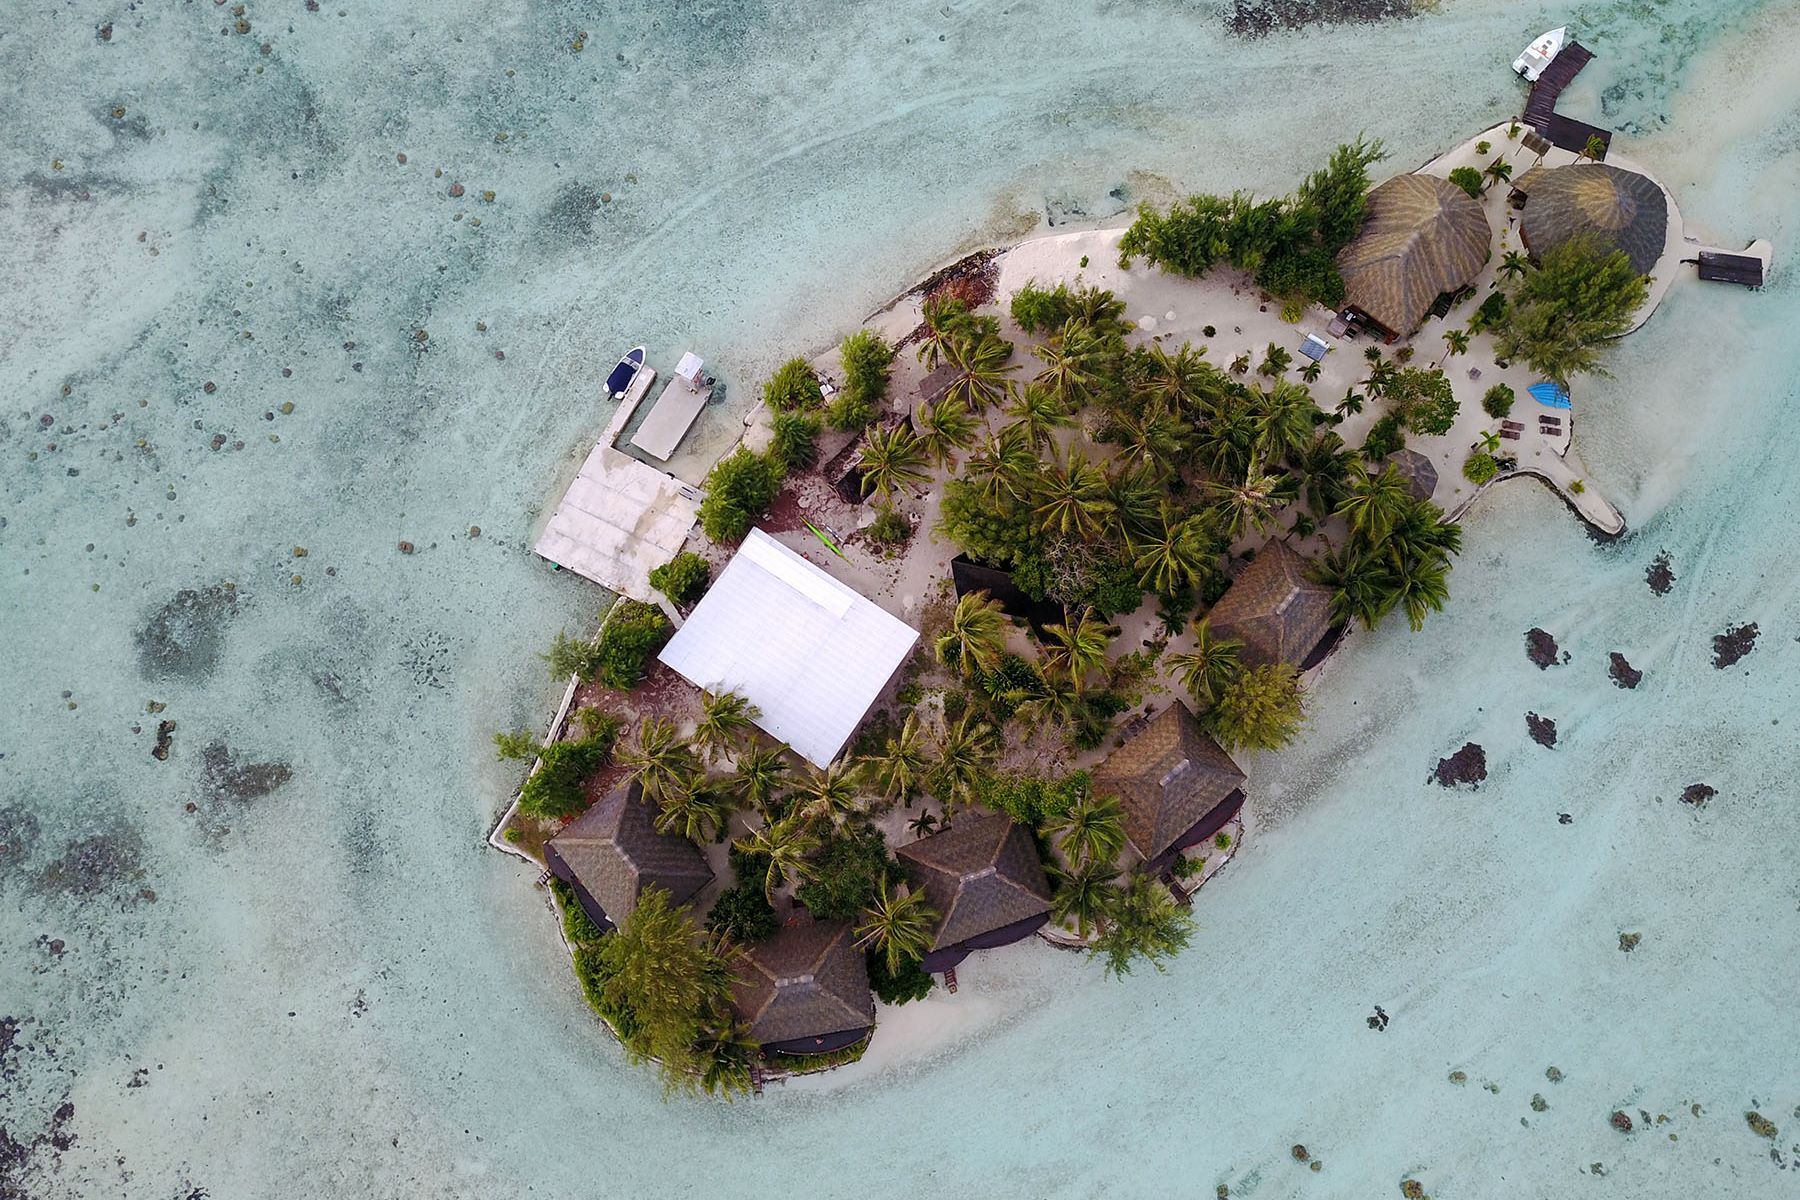 独户住宅 为 销售 在 Private islet in the heart of Leeward islands Tahaa, 法属玻利尼西亚